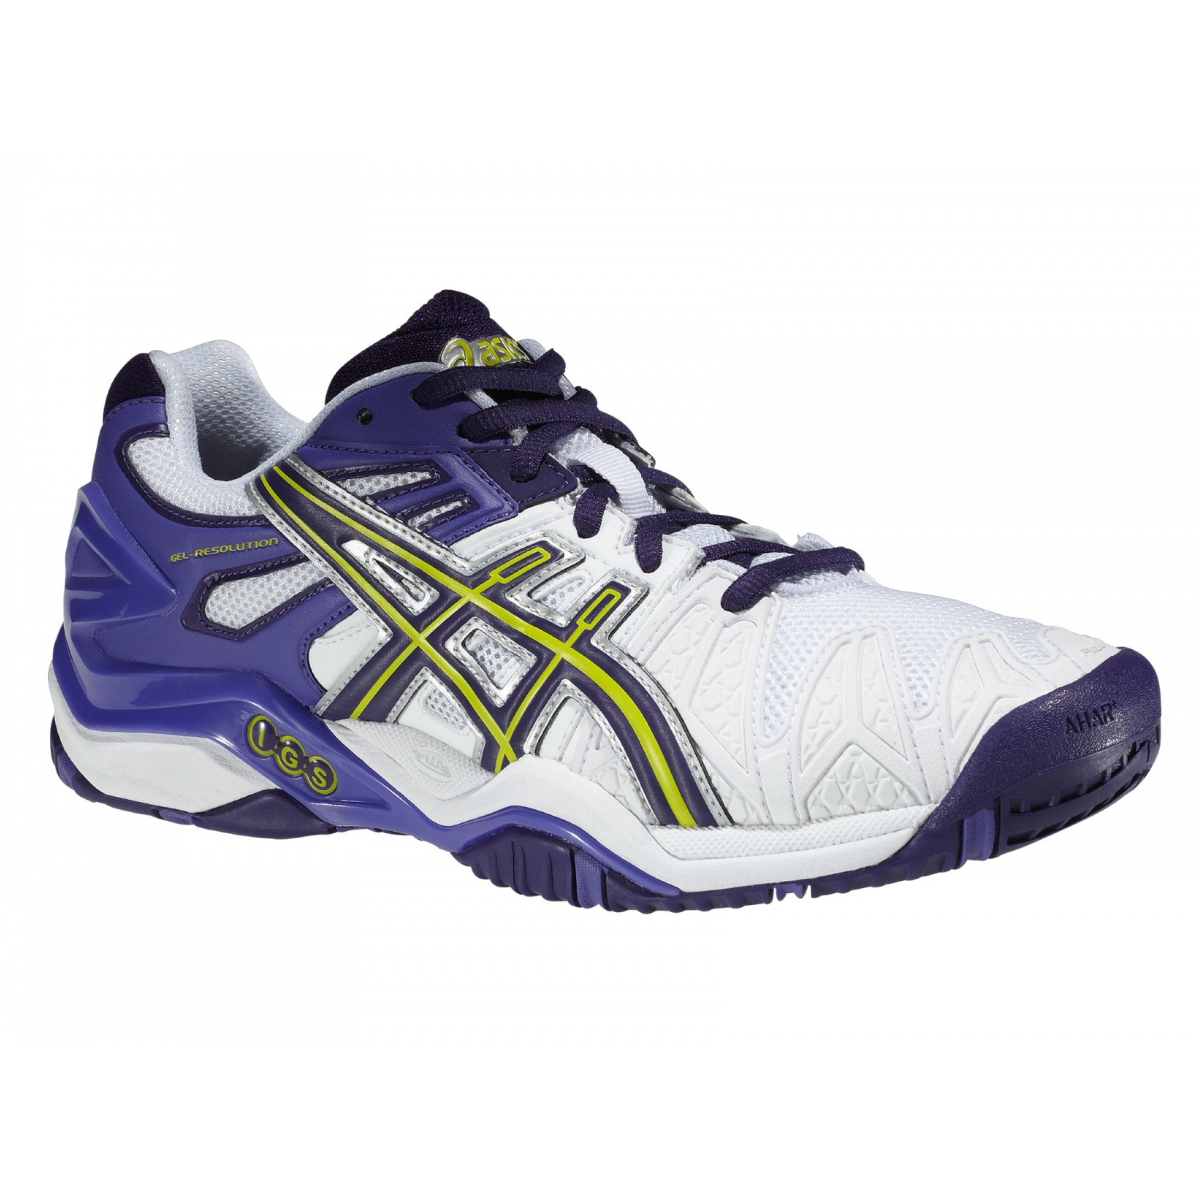 asics gel resolution 5 weiss purple tennisschuhe damen versandkostenfrei online bestellen. Black Bedroom Furniture Sets. Home Design Ideas